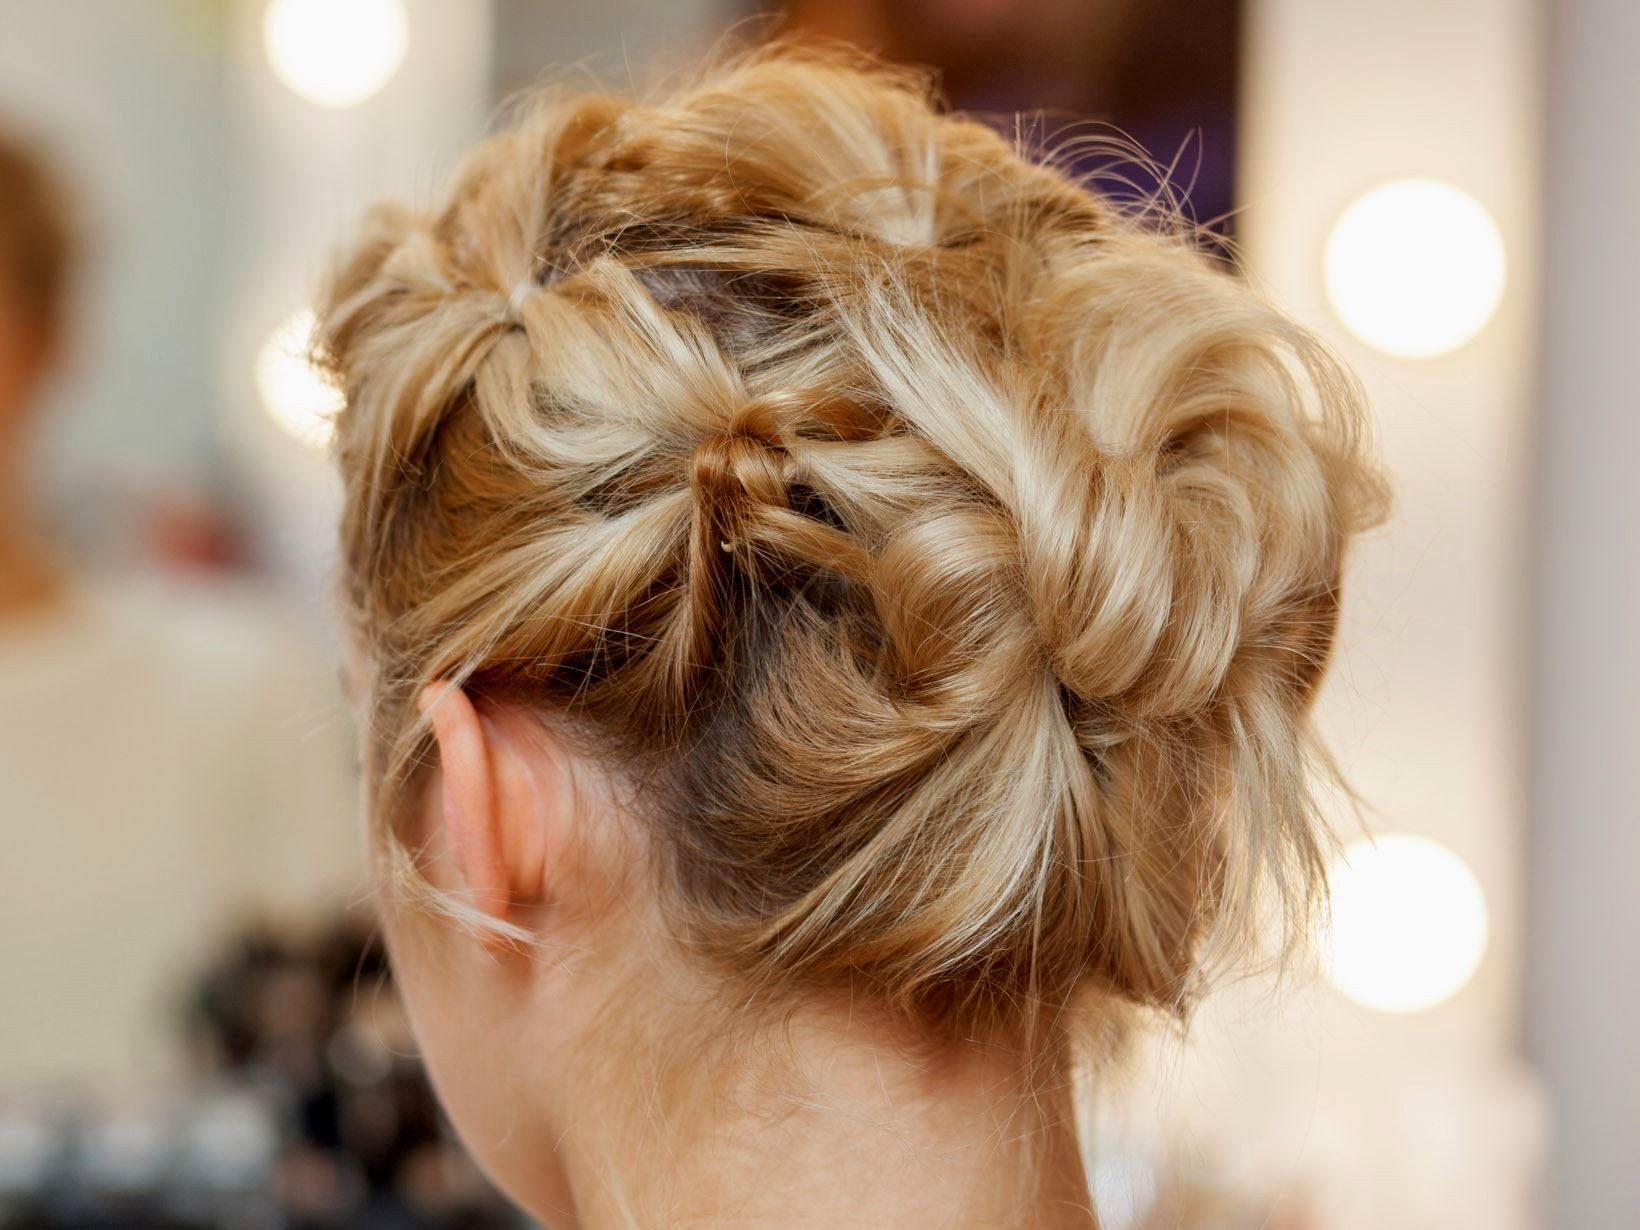 lovely updos for thin hair pattern-Best updos for thin hair photography